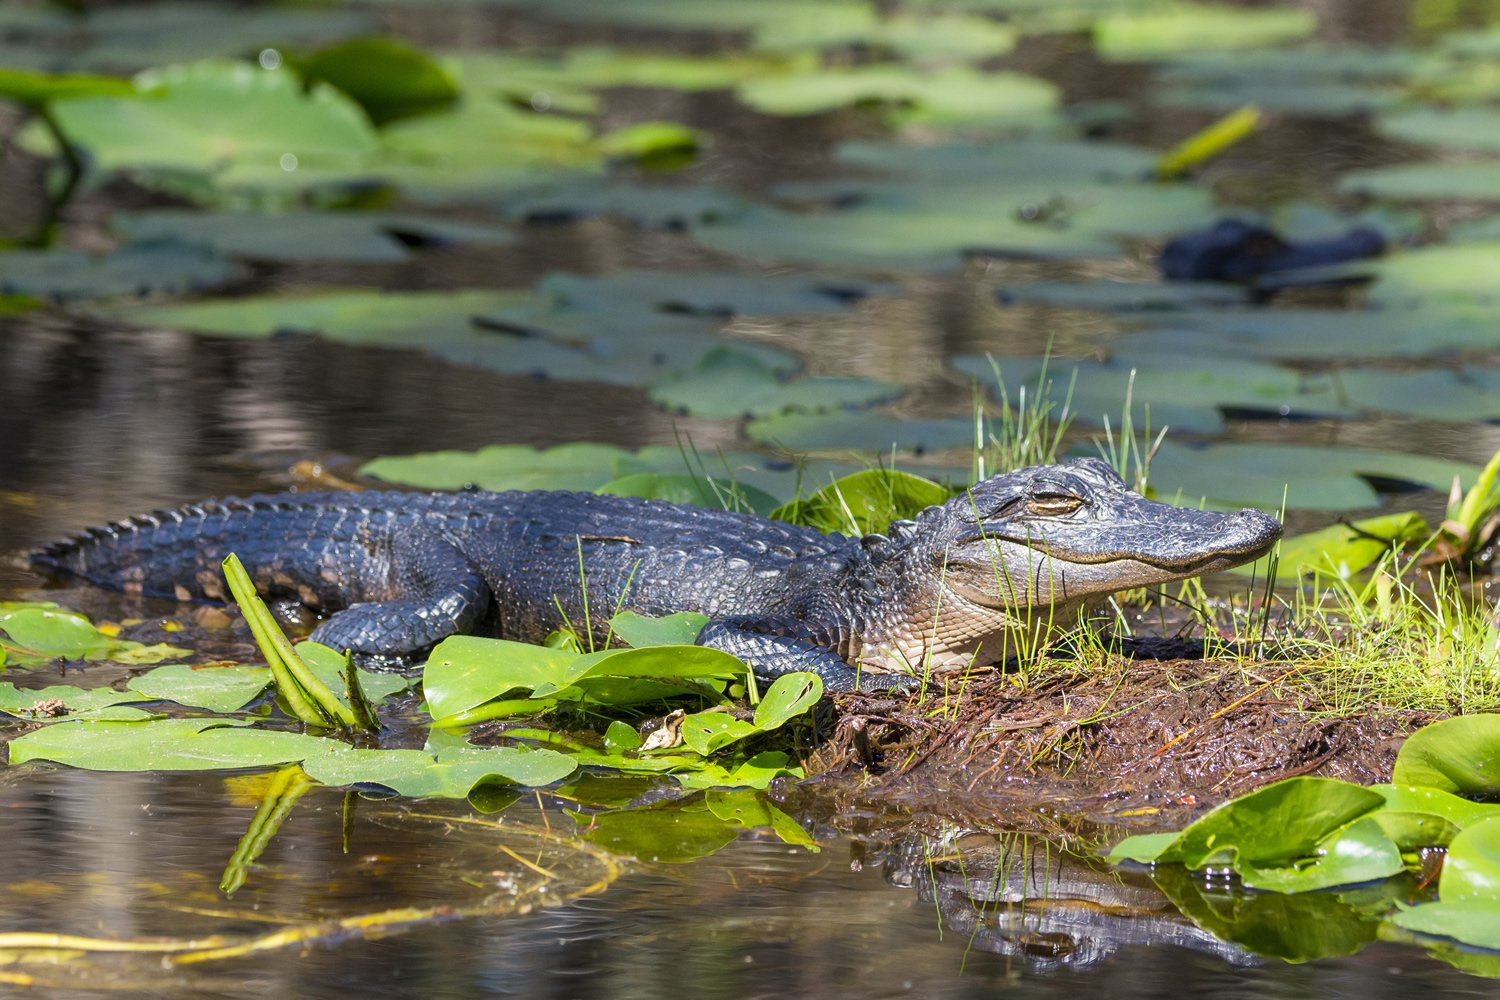 Okefenokee alligators by Tom Wilson